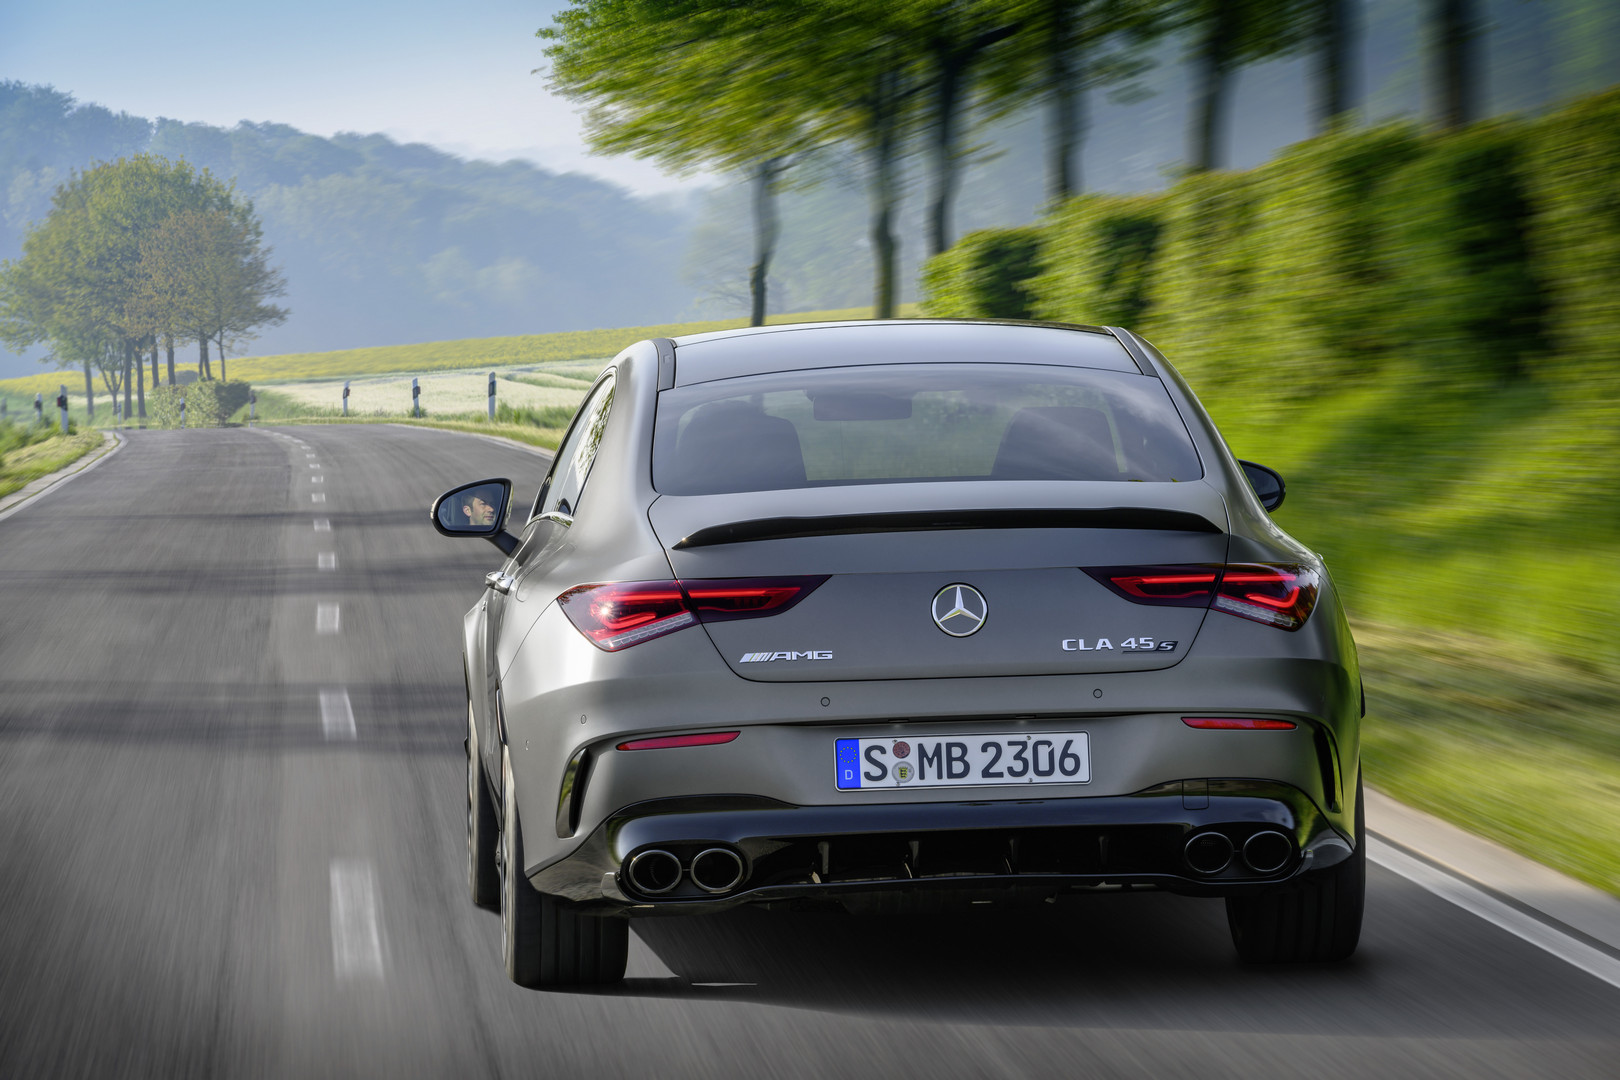 2020 Mercedes-AMG CLA 45 S Rear View